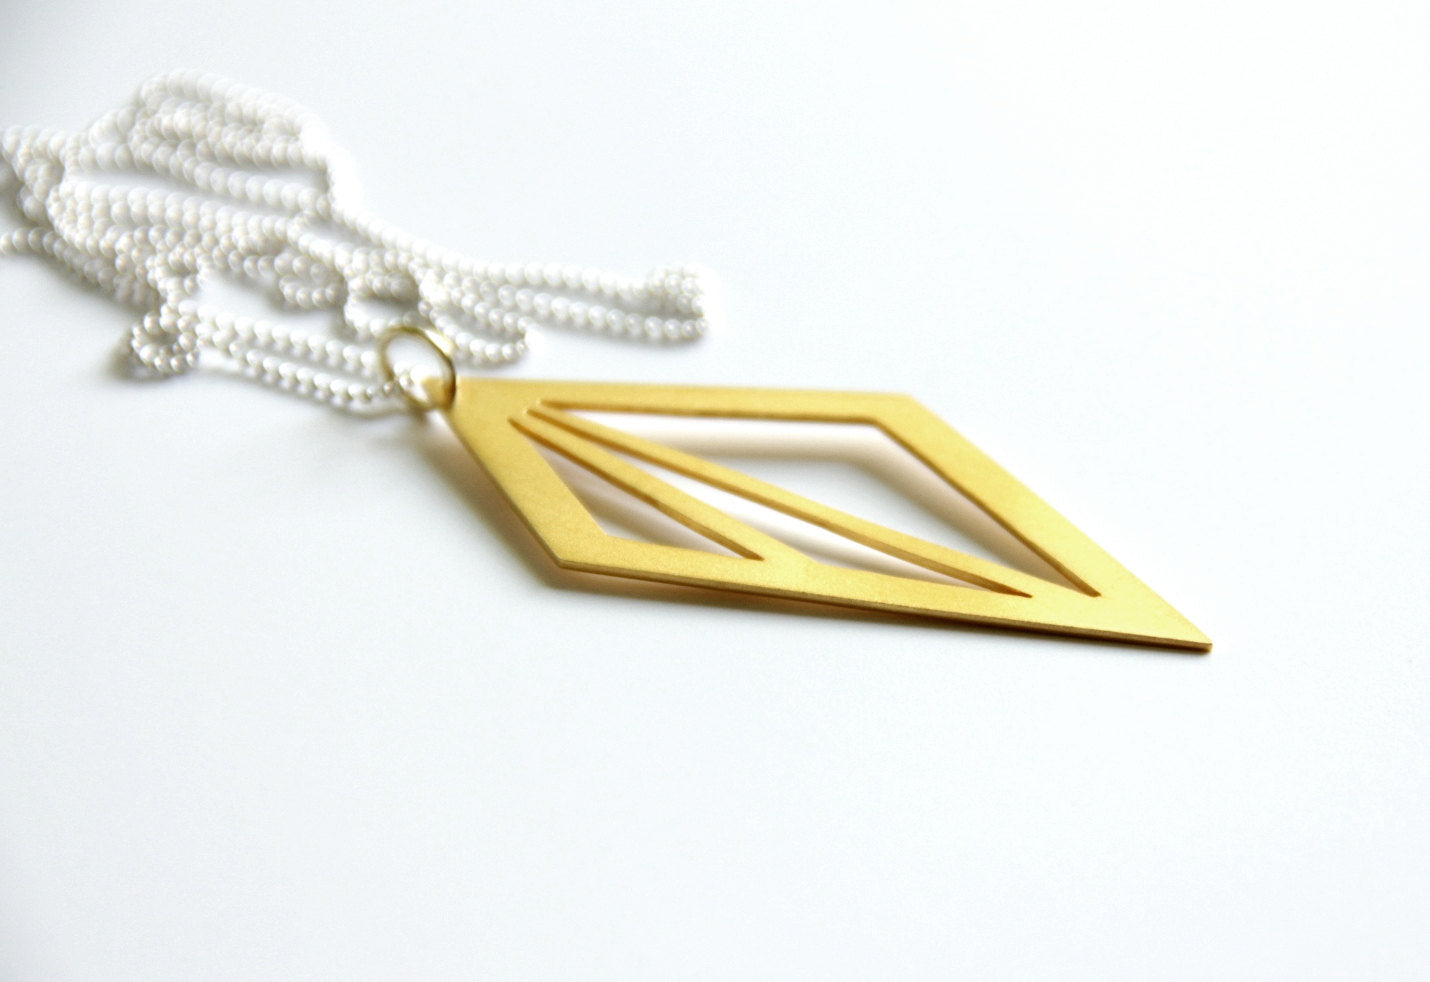 24K Gold Plated Sterling Silver Geometric Triangle Cut Out Necklace